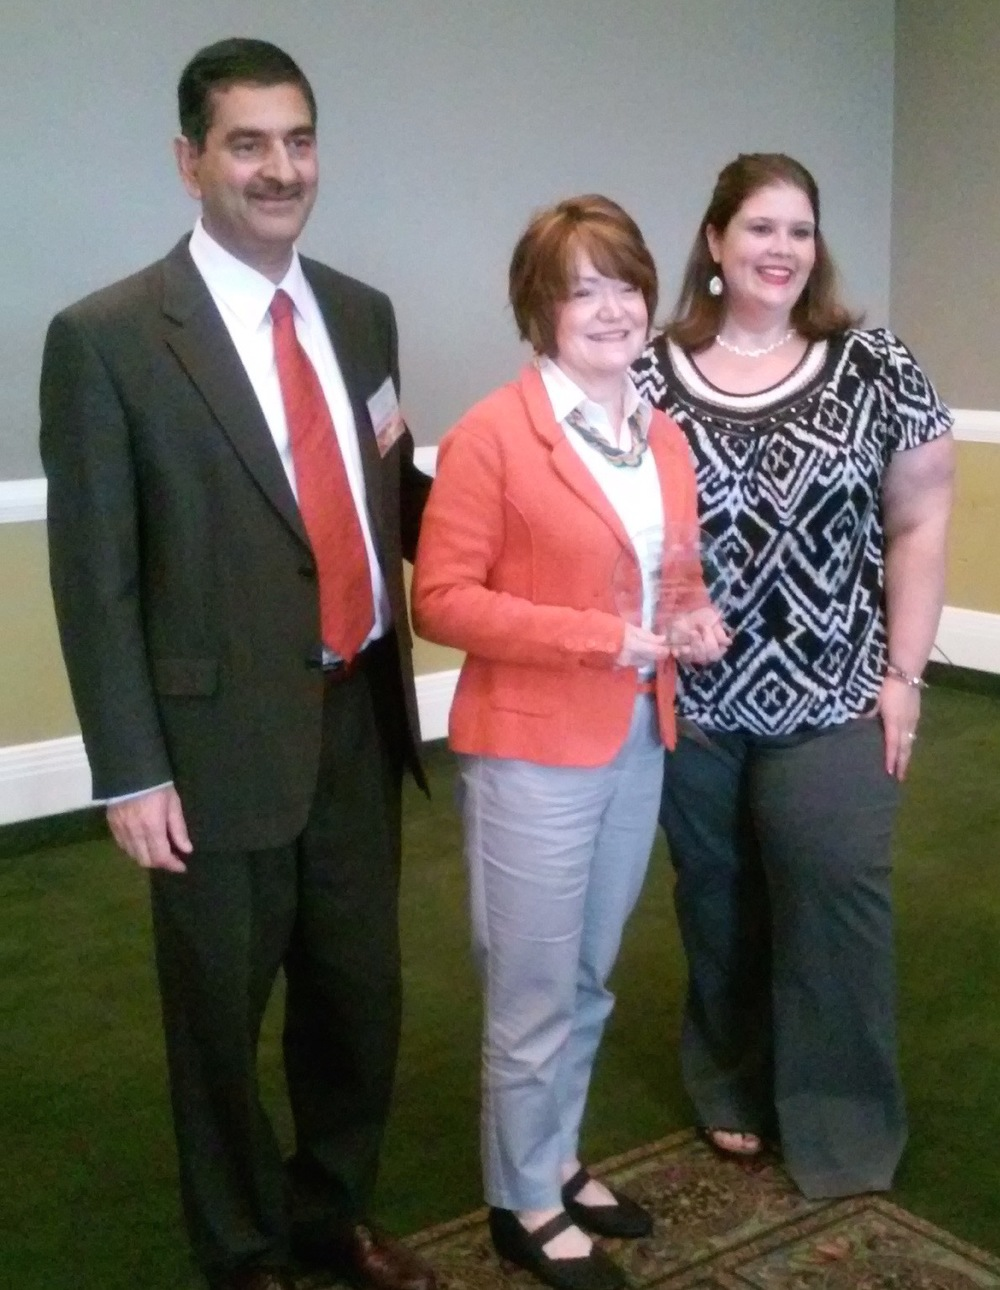 Cathy Kumor with Dr. Safdar Chaudhary and Crystal Longanecker